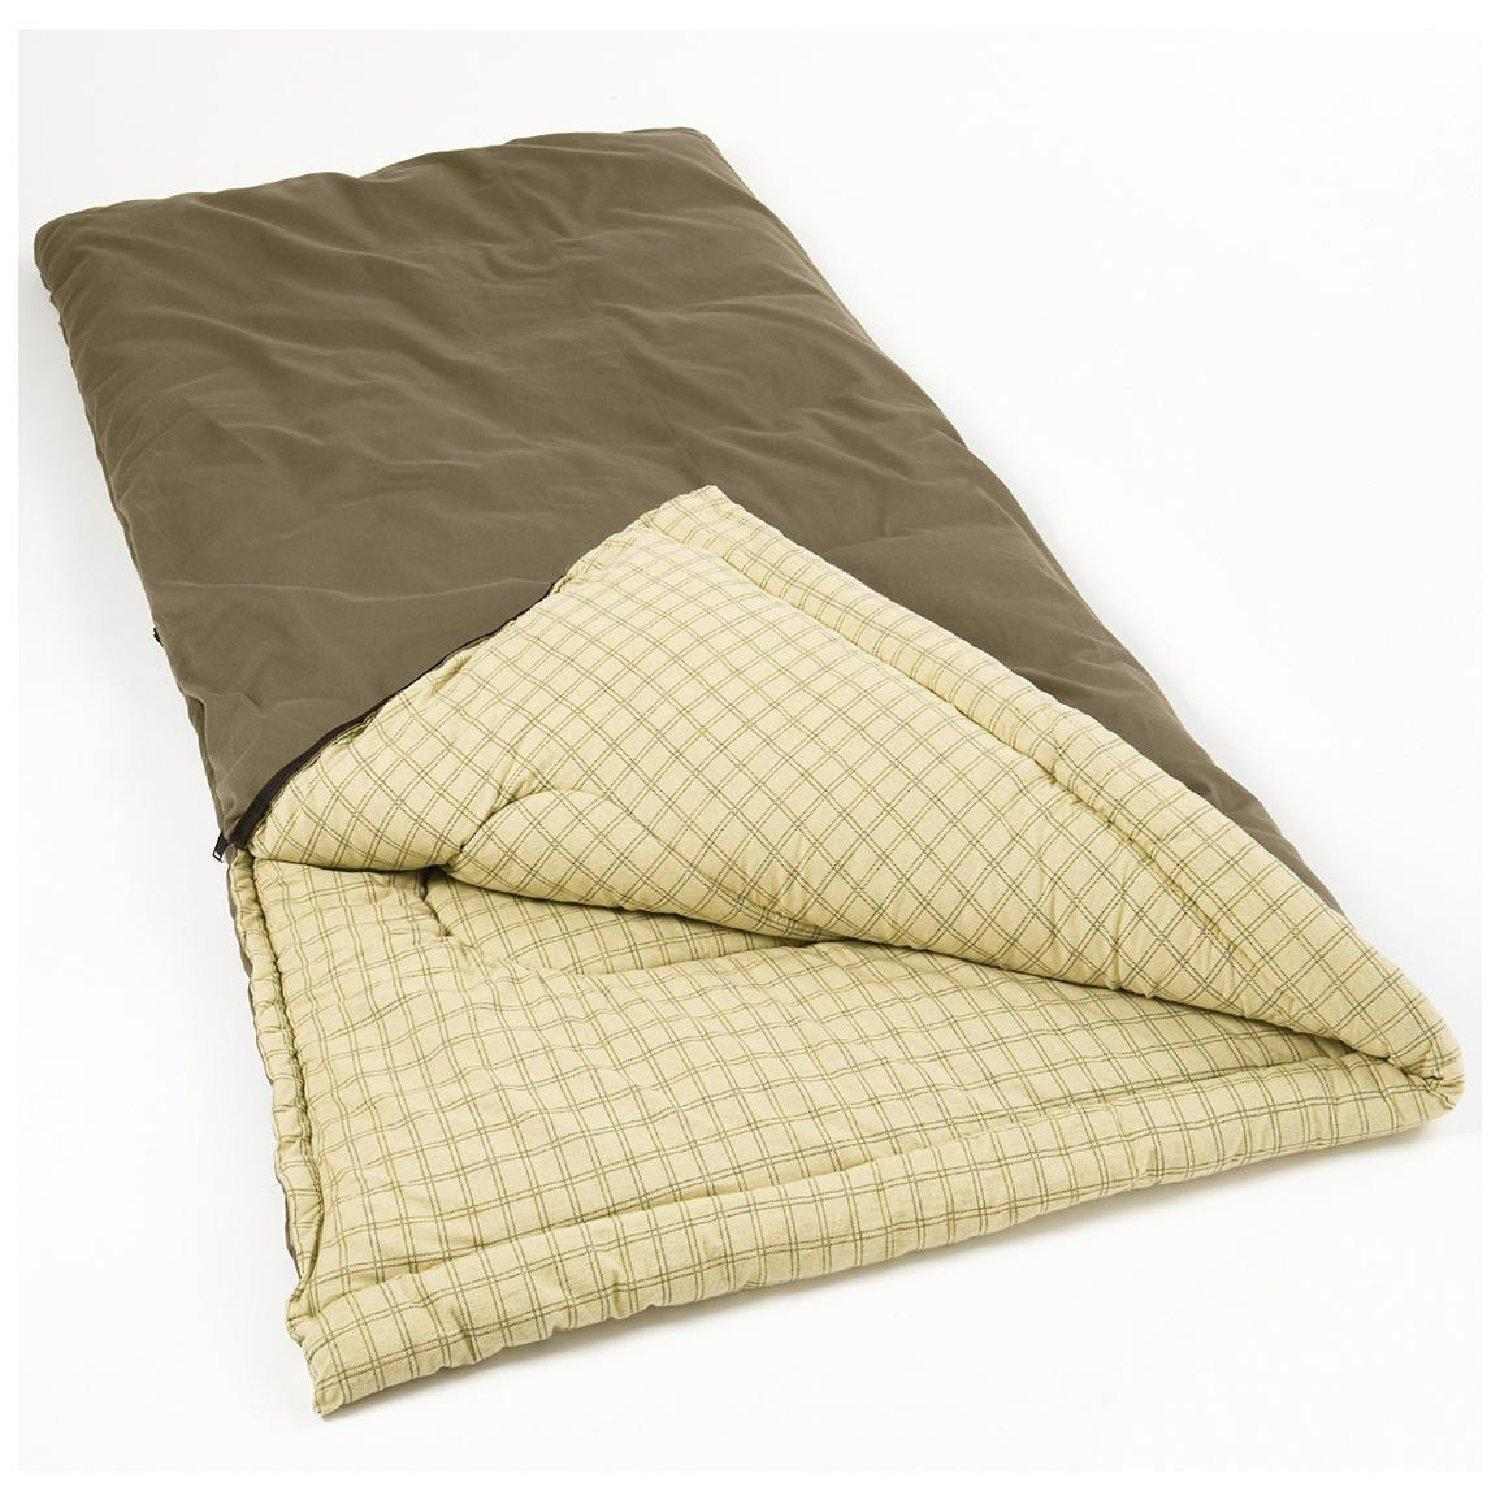 $44.16 Coleman Big Game -5 Degree Big and Tall Sleeping Bag